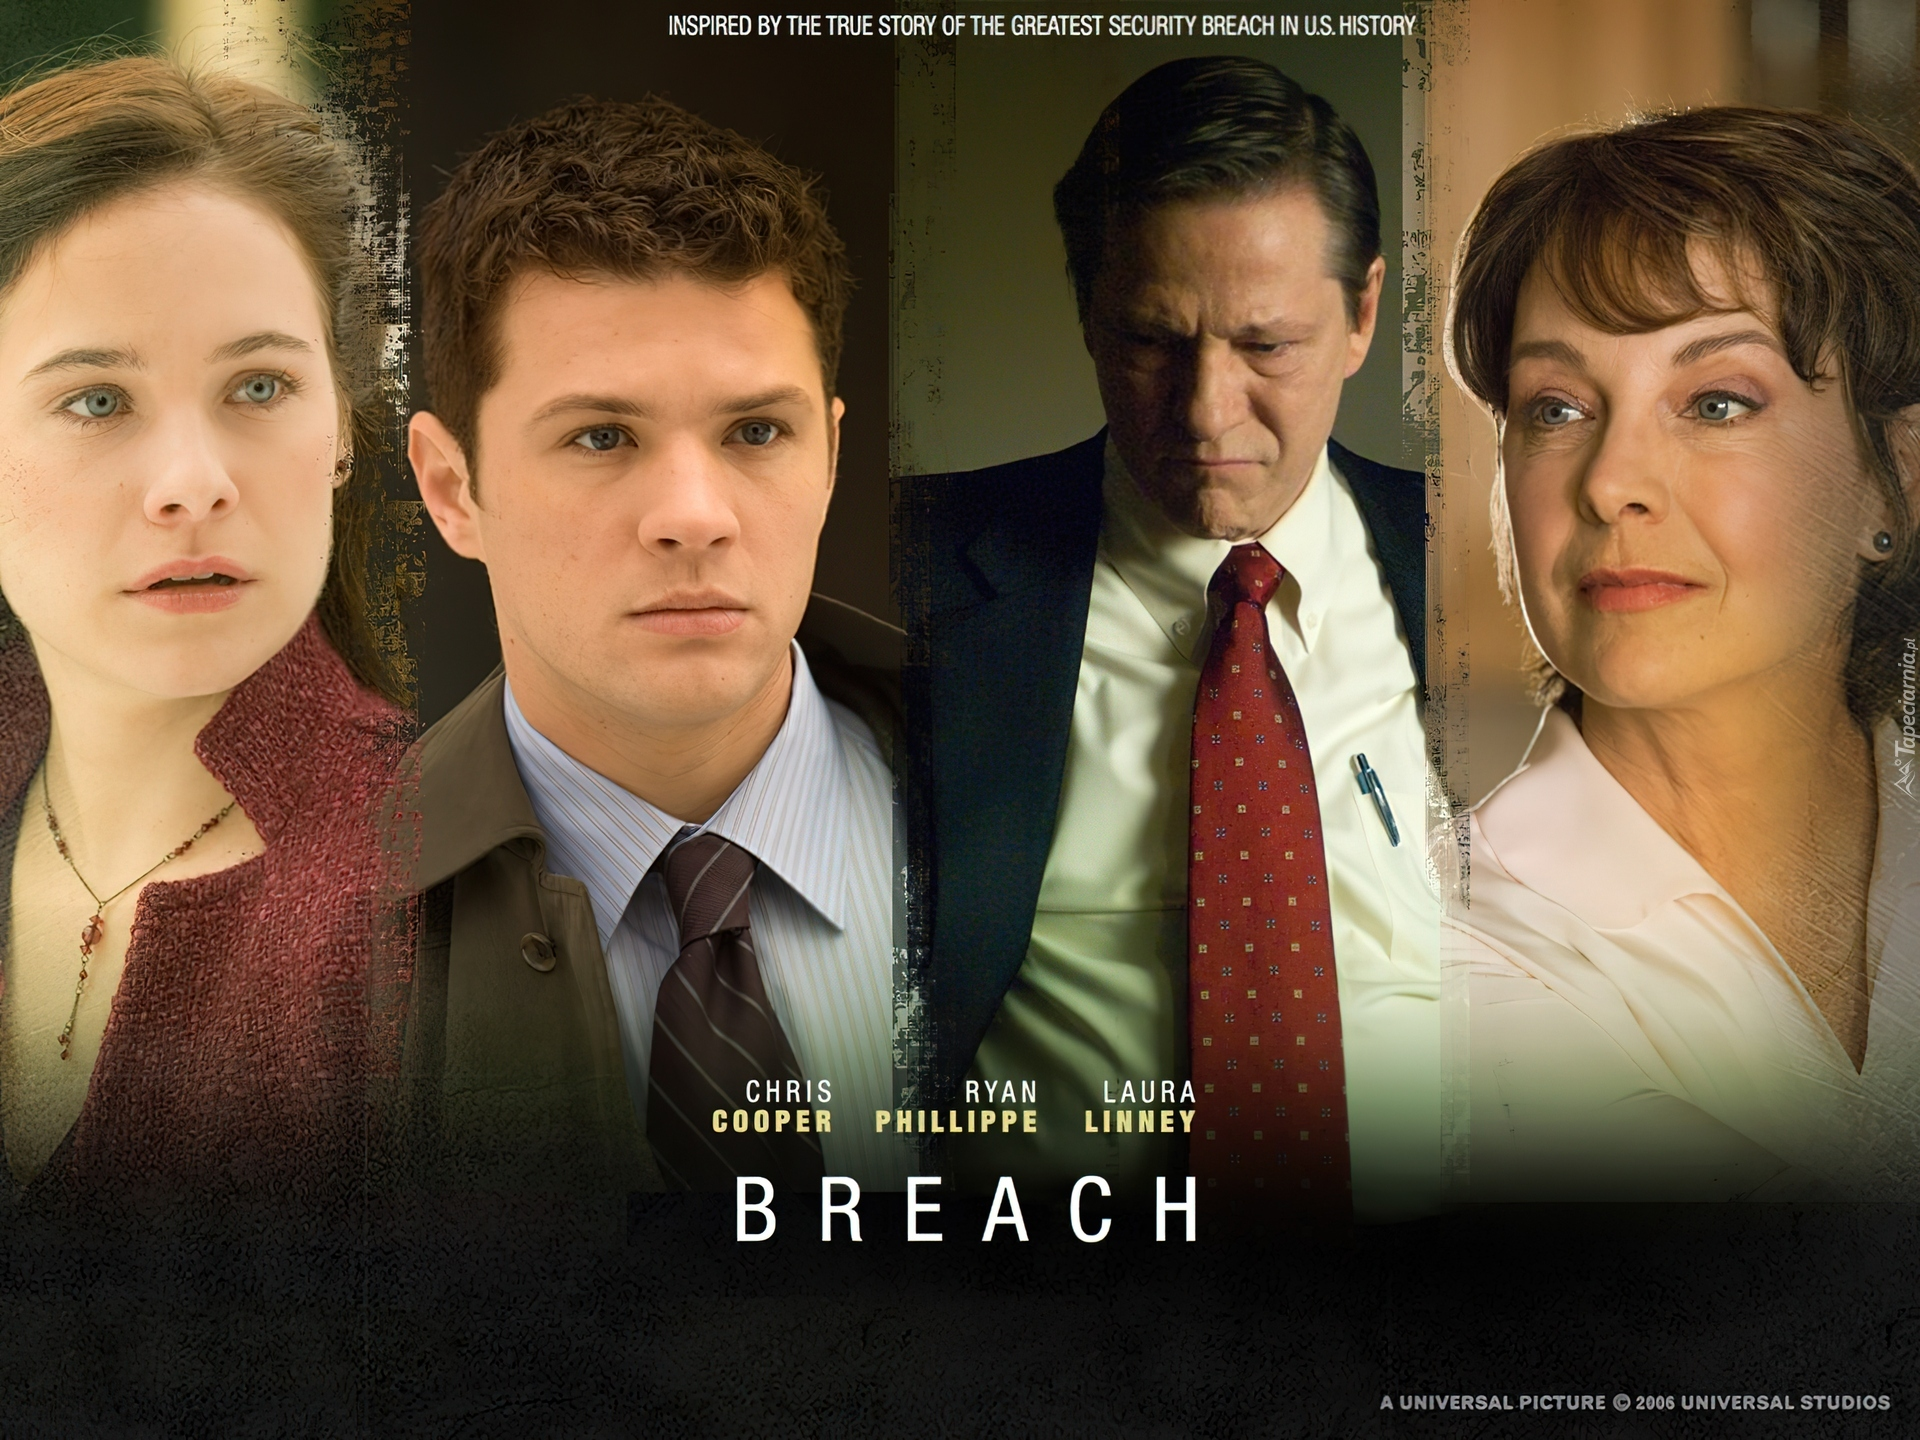 Breach, Ryan Phillippe, Chris Cooper, Laura Linney, Caroline Dhavernas